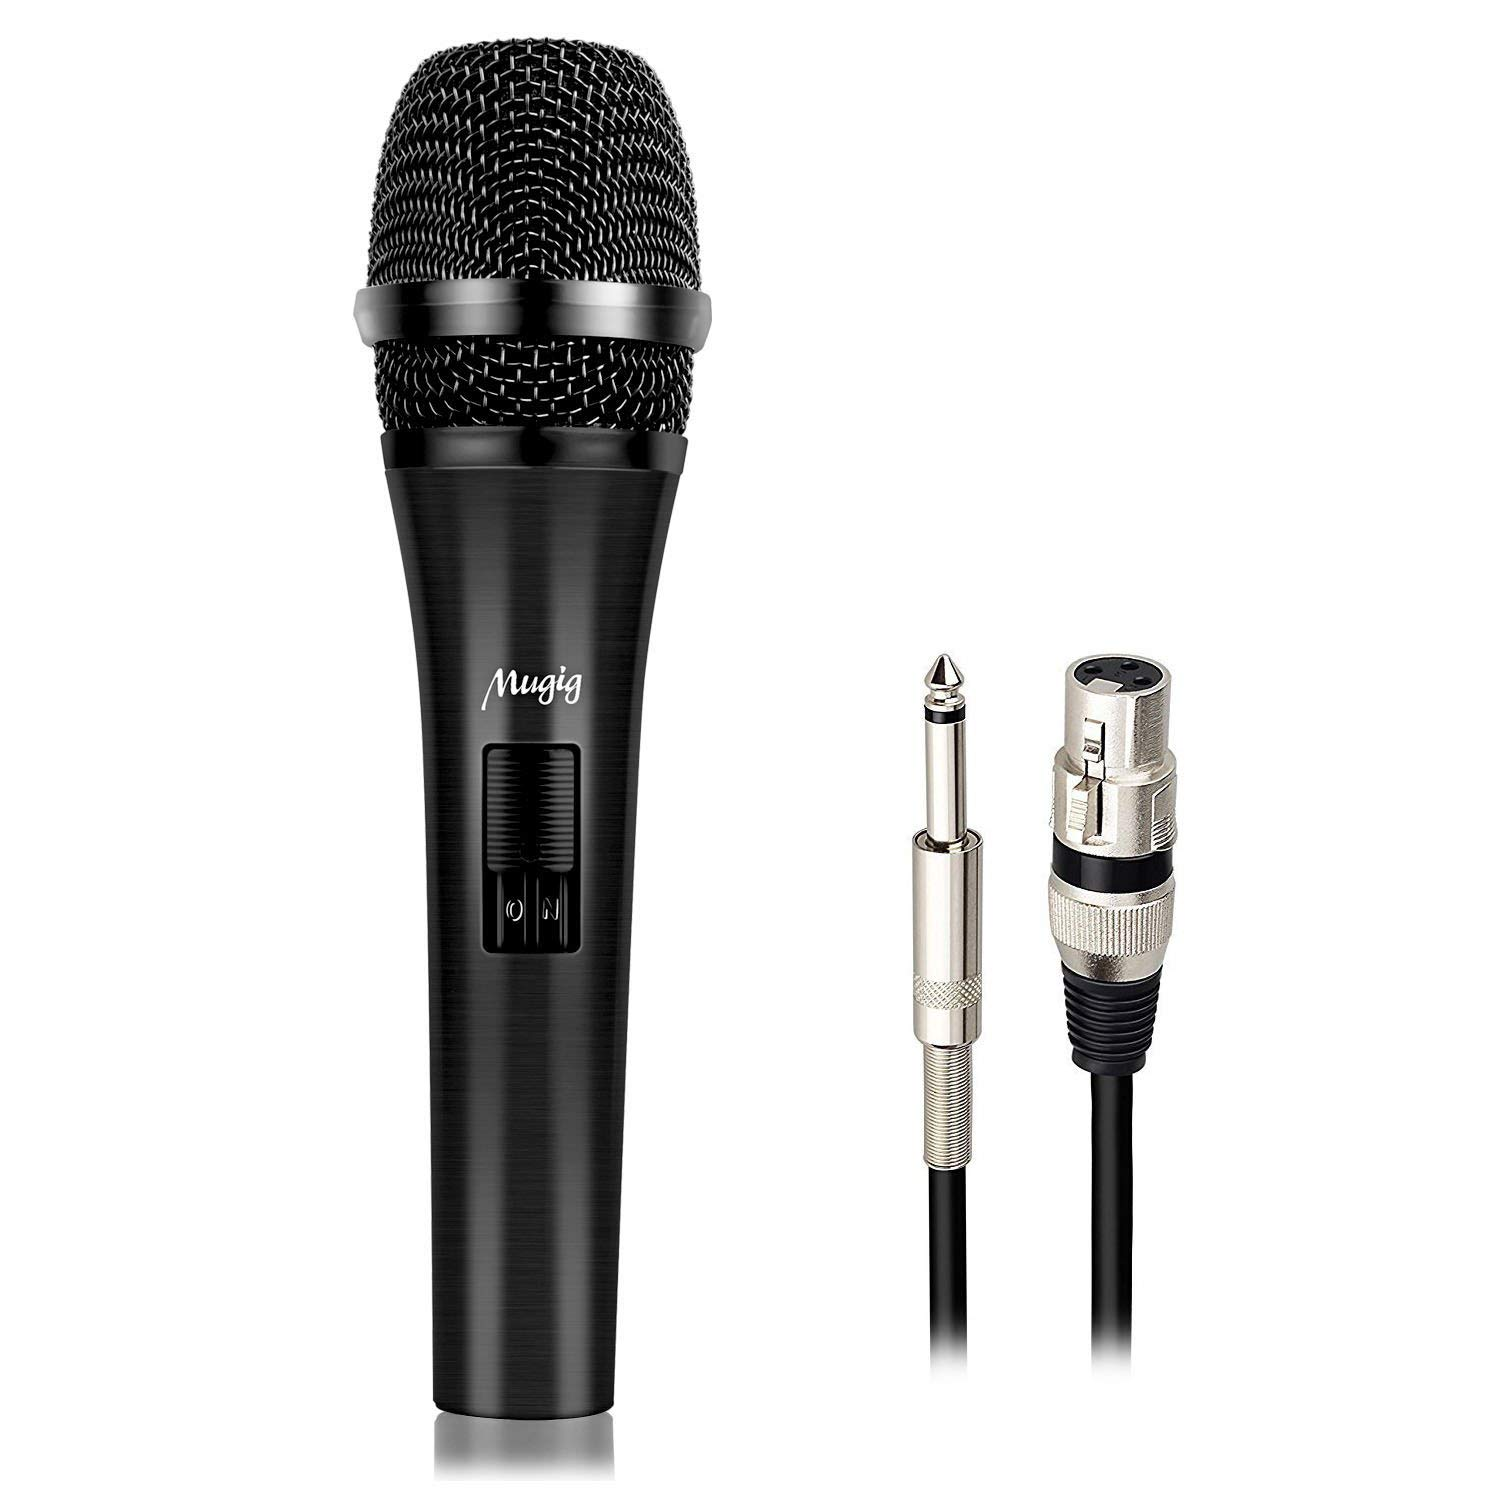 Mugig Dynamic Microphone, Cardioid, Uni-Directional, Vocal Microphone for Karaoke, Performance, Public Speaking, Stage, Recording, Include 16ft XLR to QTR Cable by Mugig